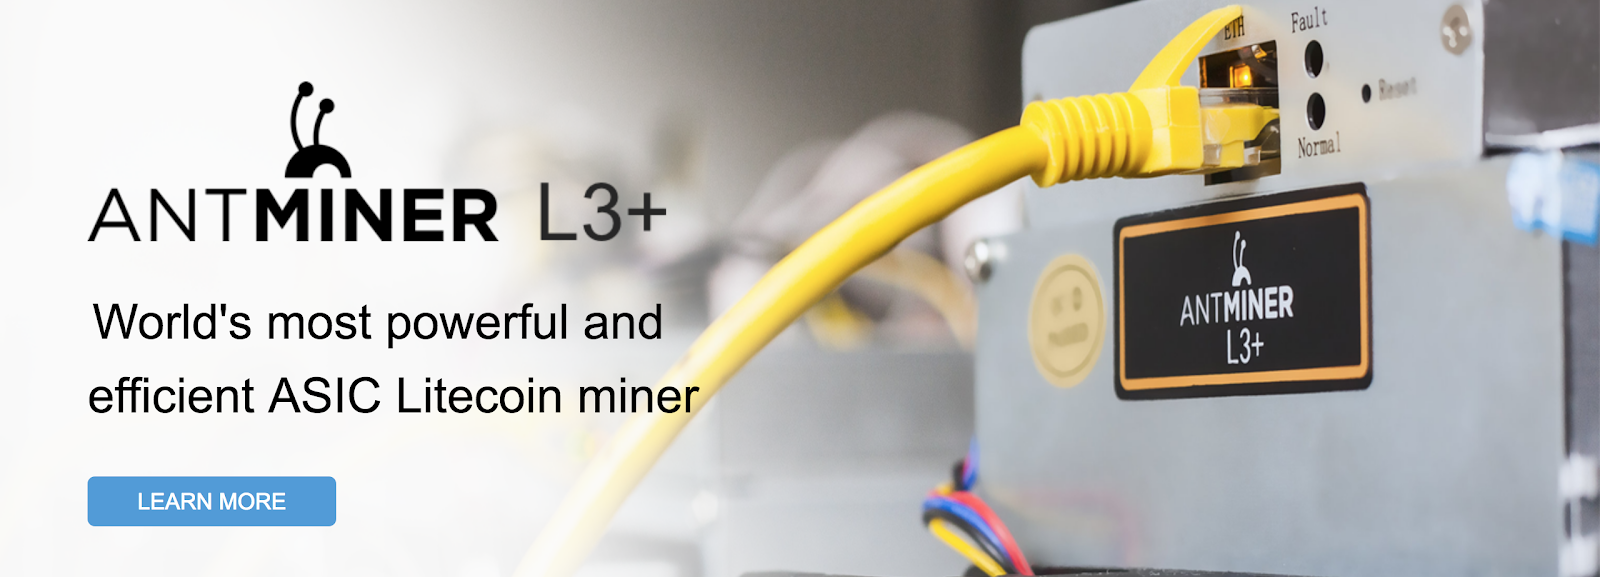 How to Mine Litecoin with Antminer L3 Plus